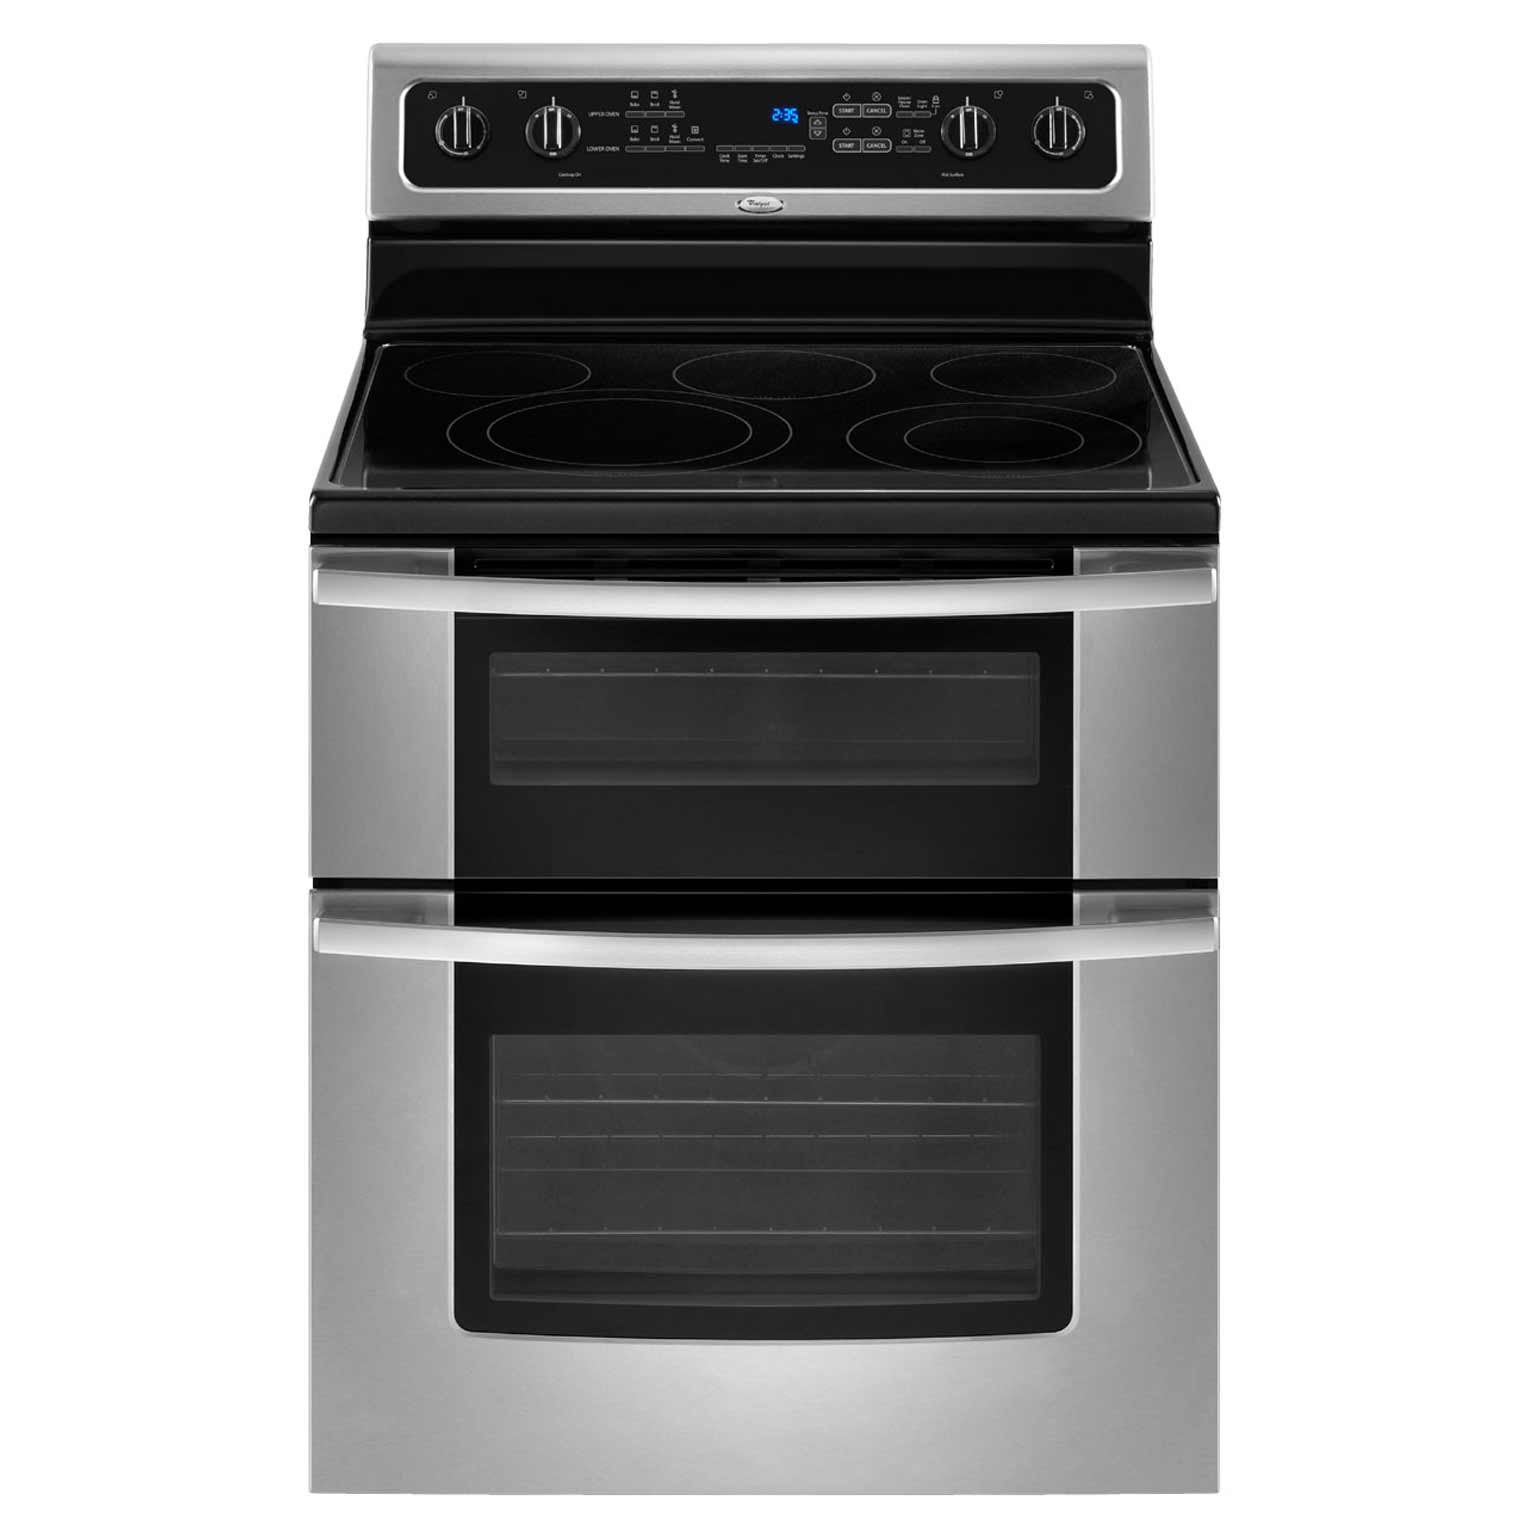 Whirlpool Freestanding Electric Range with Double Oven